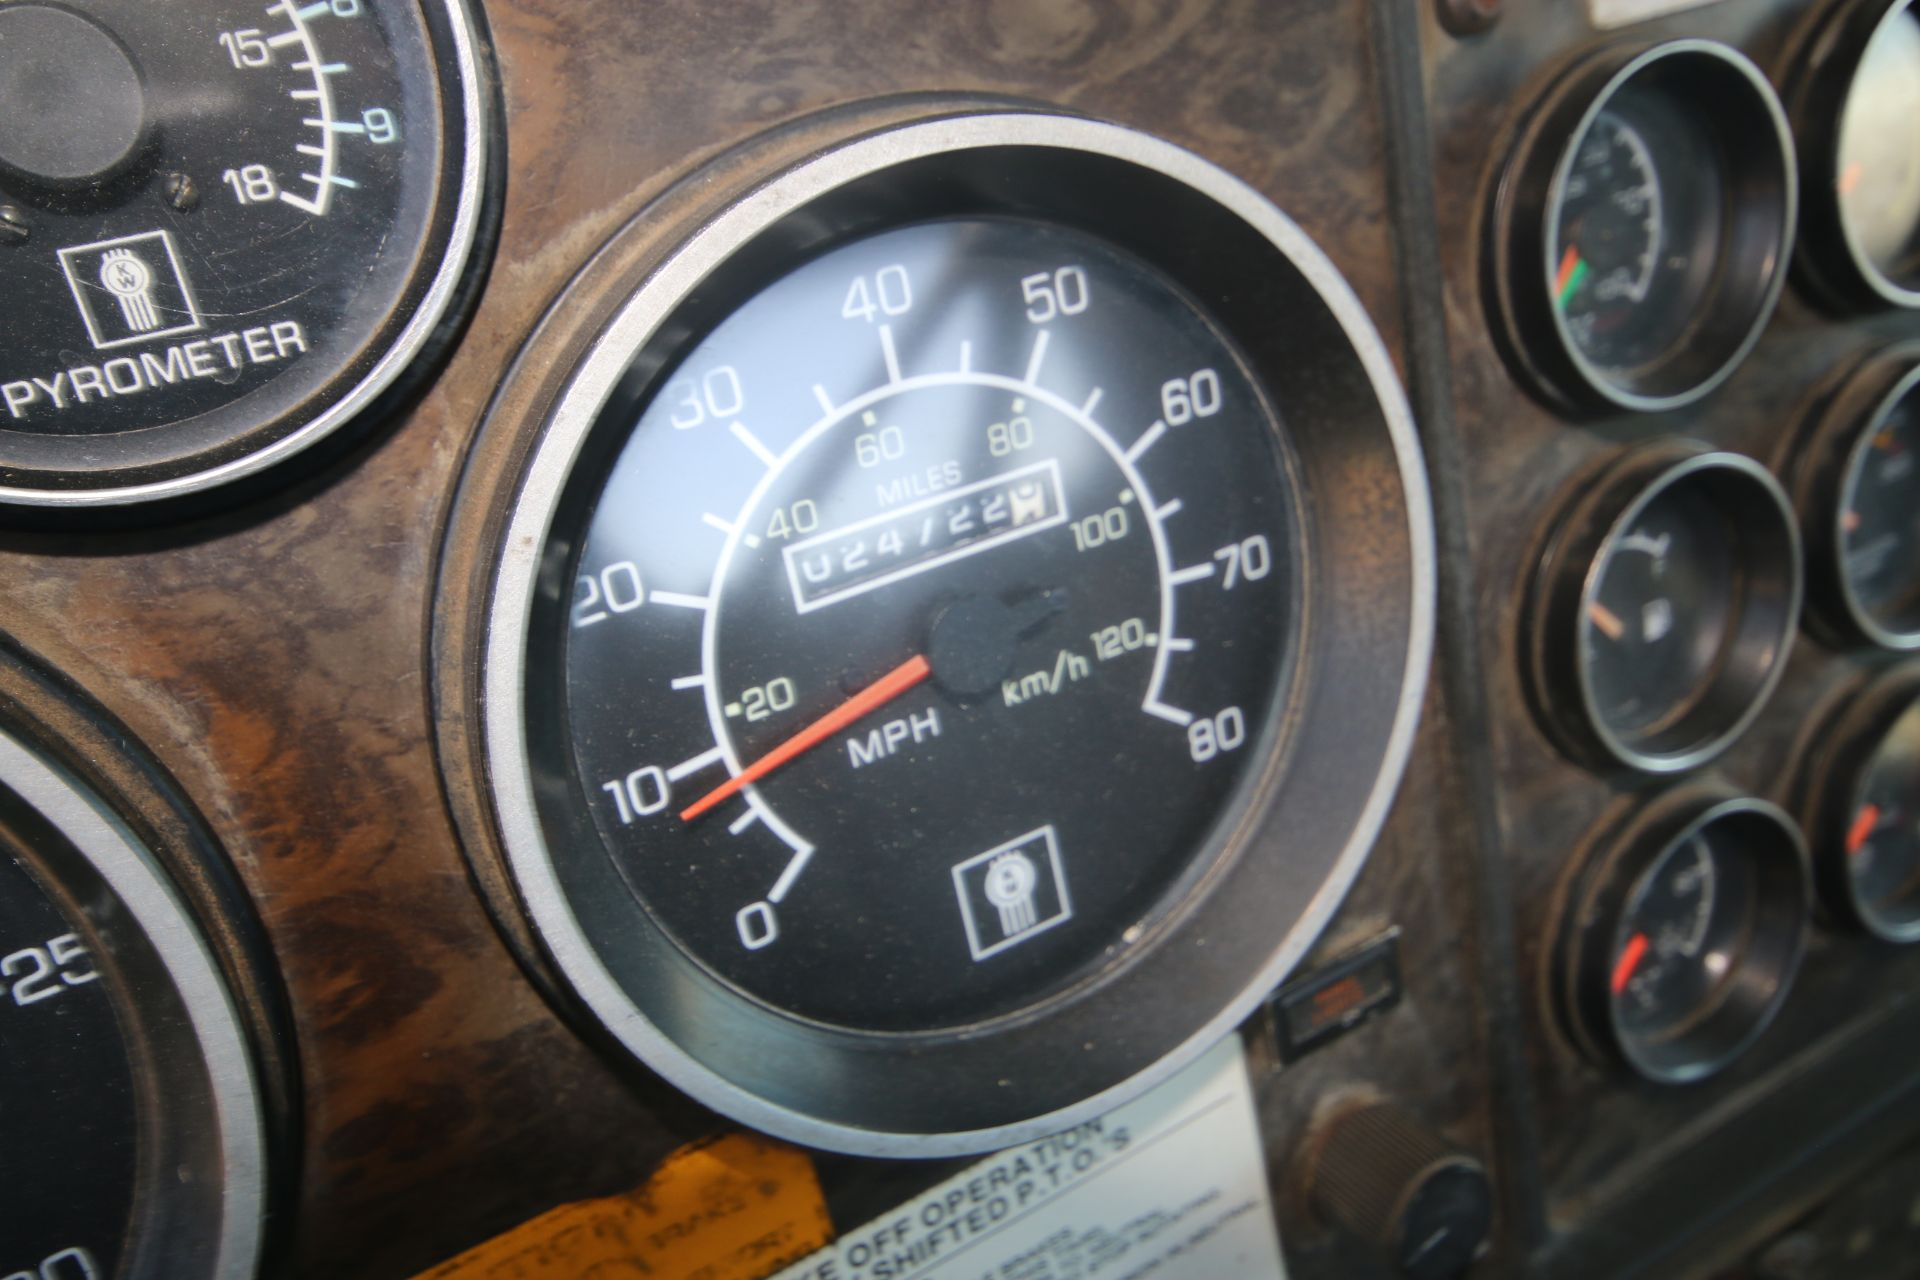 1996 Kenworth 3-Axle Roll-Off Straight Truck, VIN #: 1XKDDB9XOTS687107, with 24,722 Miles, License - Image 17 of 30